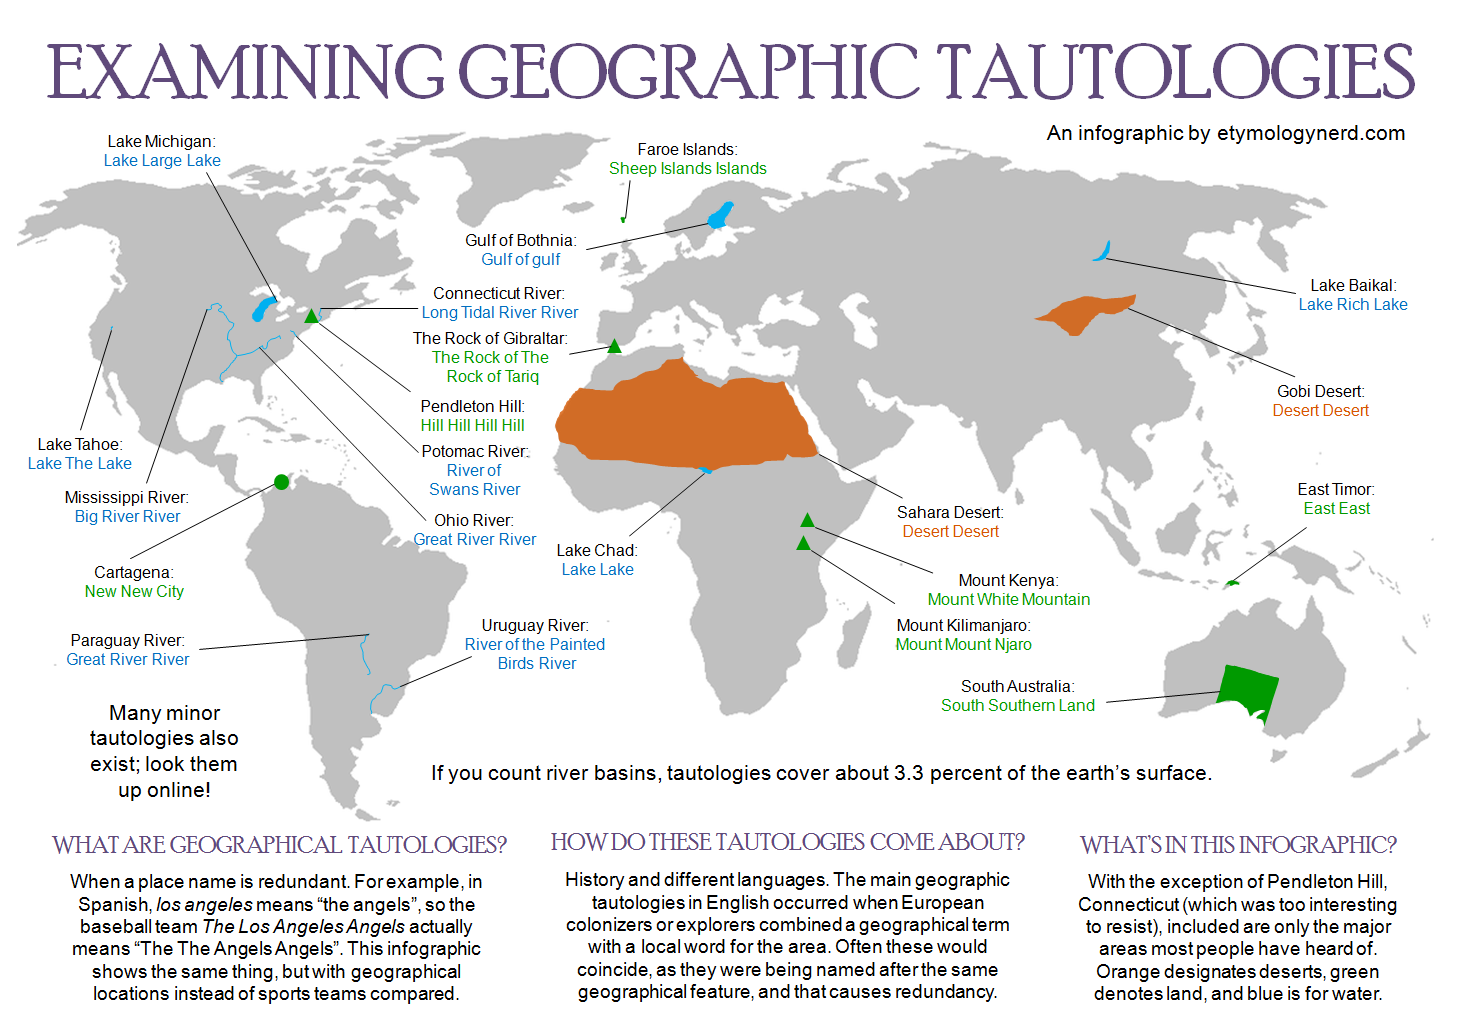 Map of geographic tautologies MAPS Pinterest